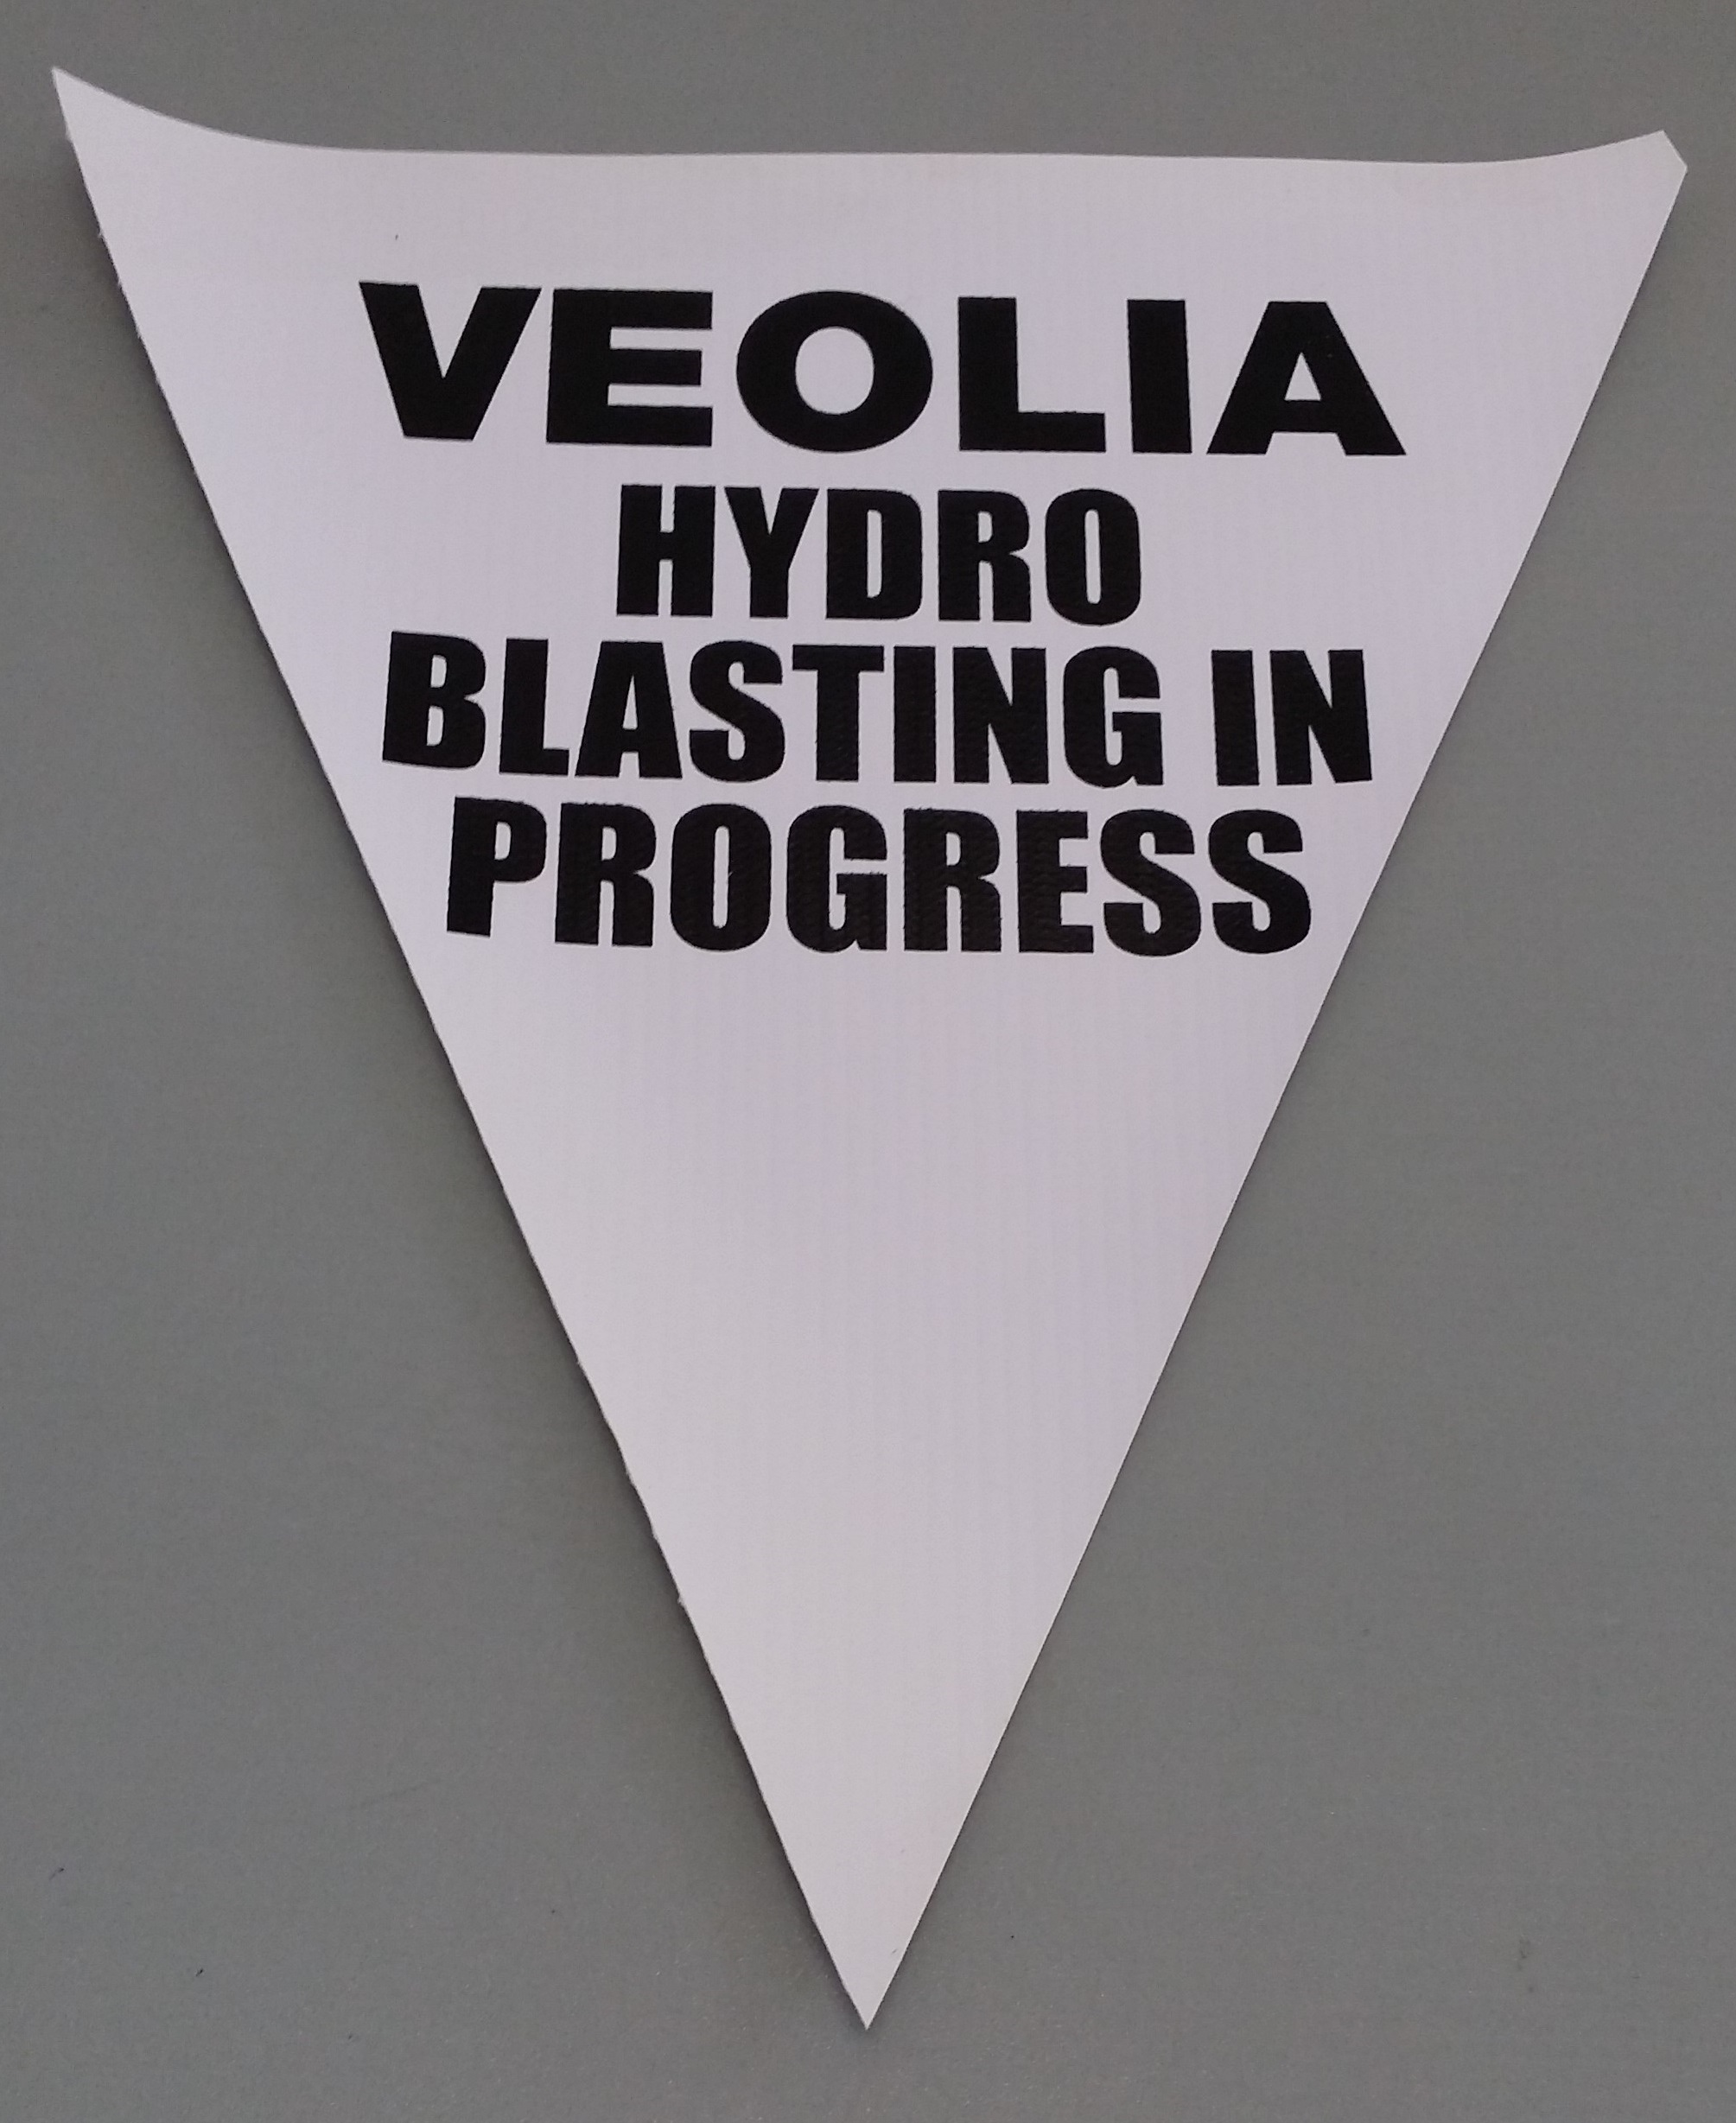 Veolia Hydro Testing in Progress (white)